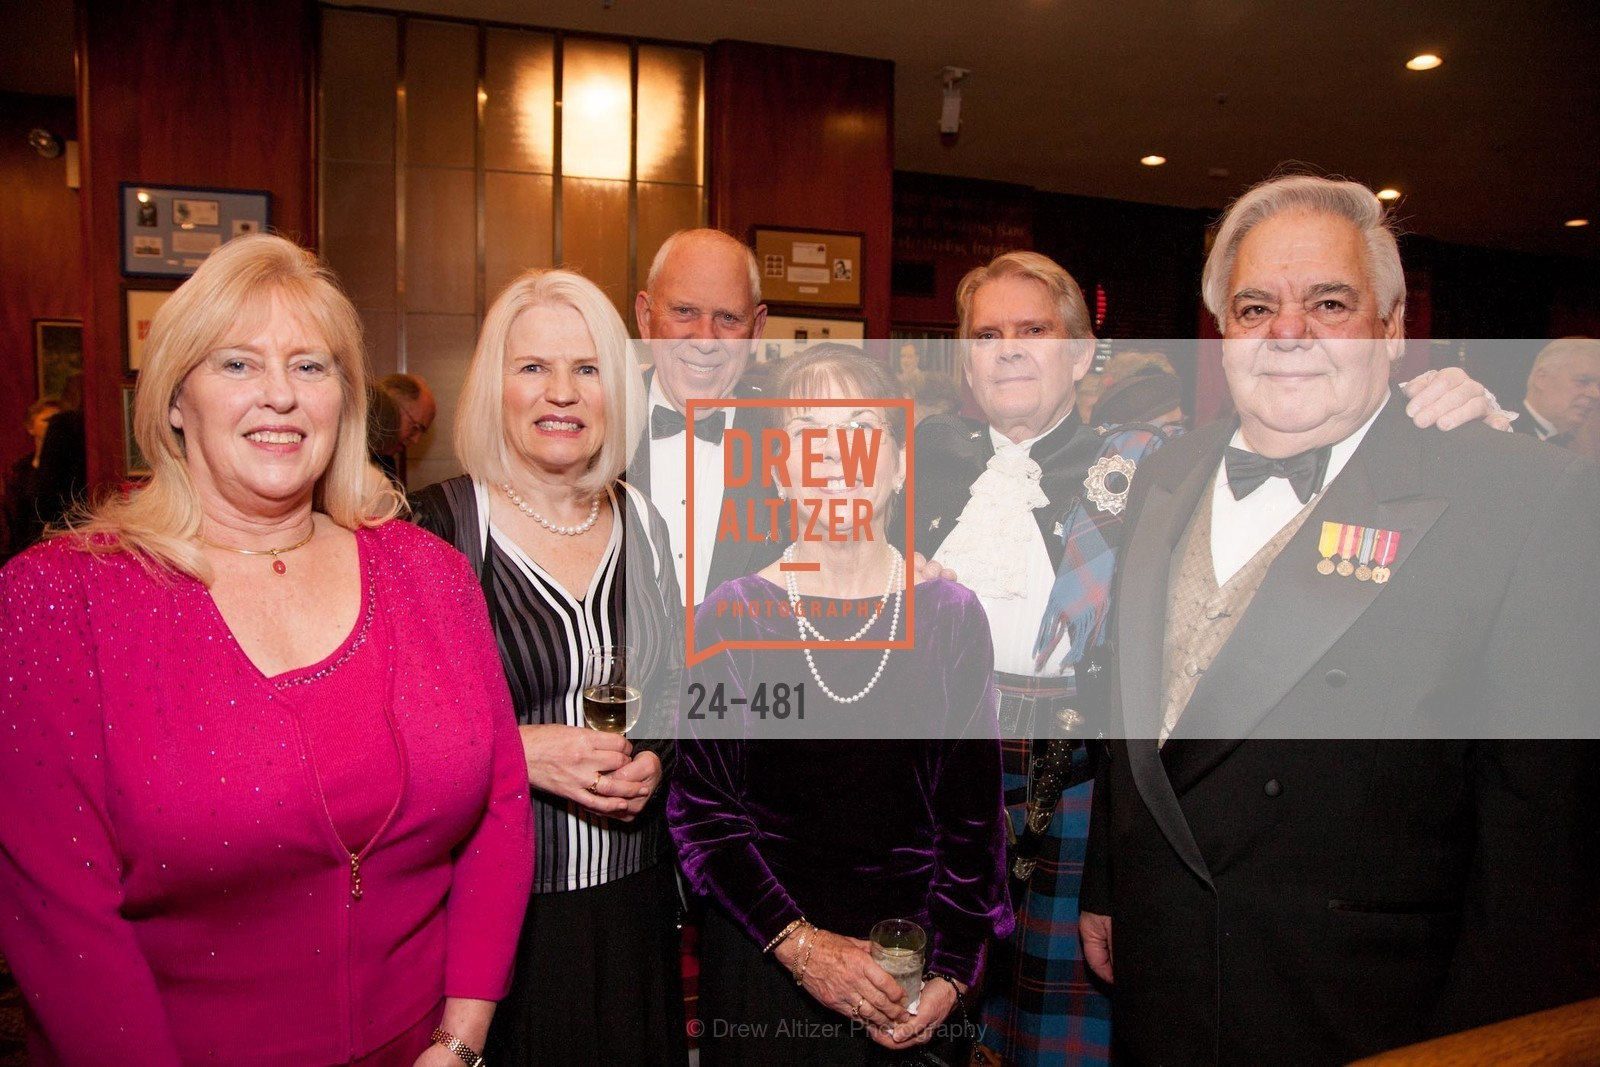 Suzanne Phelps, Dorothy McCorkindale, Anne Zucchi, Russell Wallace, Selby Haussermann, Frank Wentholt, ST. ANDREW'S SOCIETY OF SAN FRANCISCO'S Traditional Burns Night Supper 2014, US. US, January 25th, 2014,Drew Altizer, Drew Altizer Photography, full-service event agency, private events, San Francisco photographer, photographer California